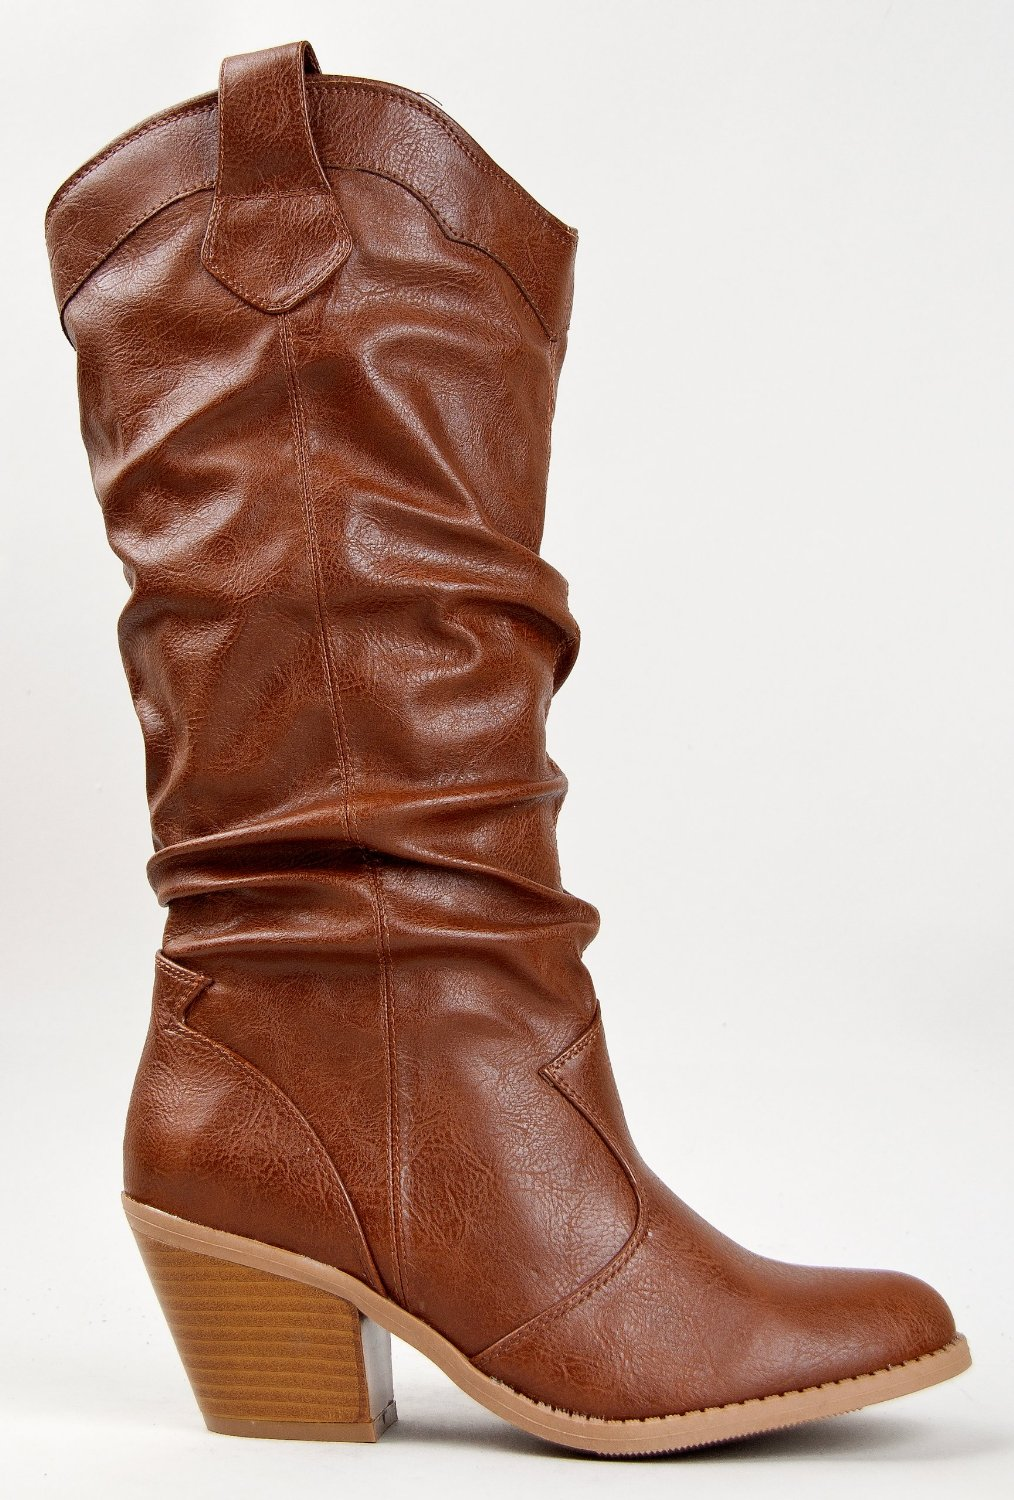 Qupid-MUSE-01-Western-Cowboy-Inspired-Slouchy-Mid-Calf-Knee-High-Stacked-Heel miniature 11